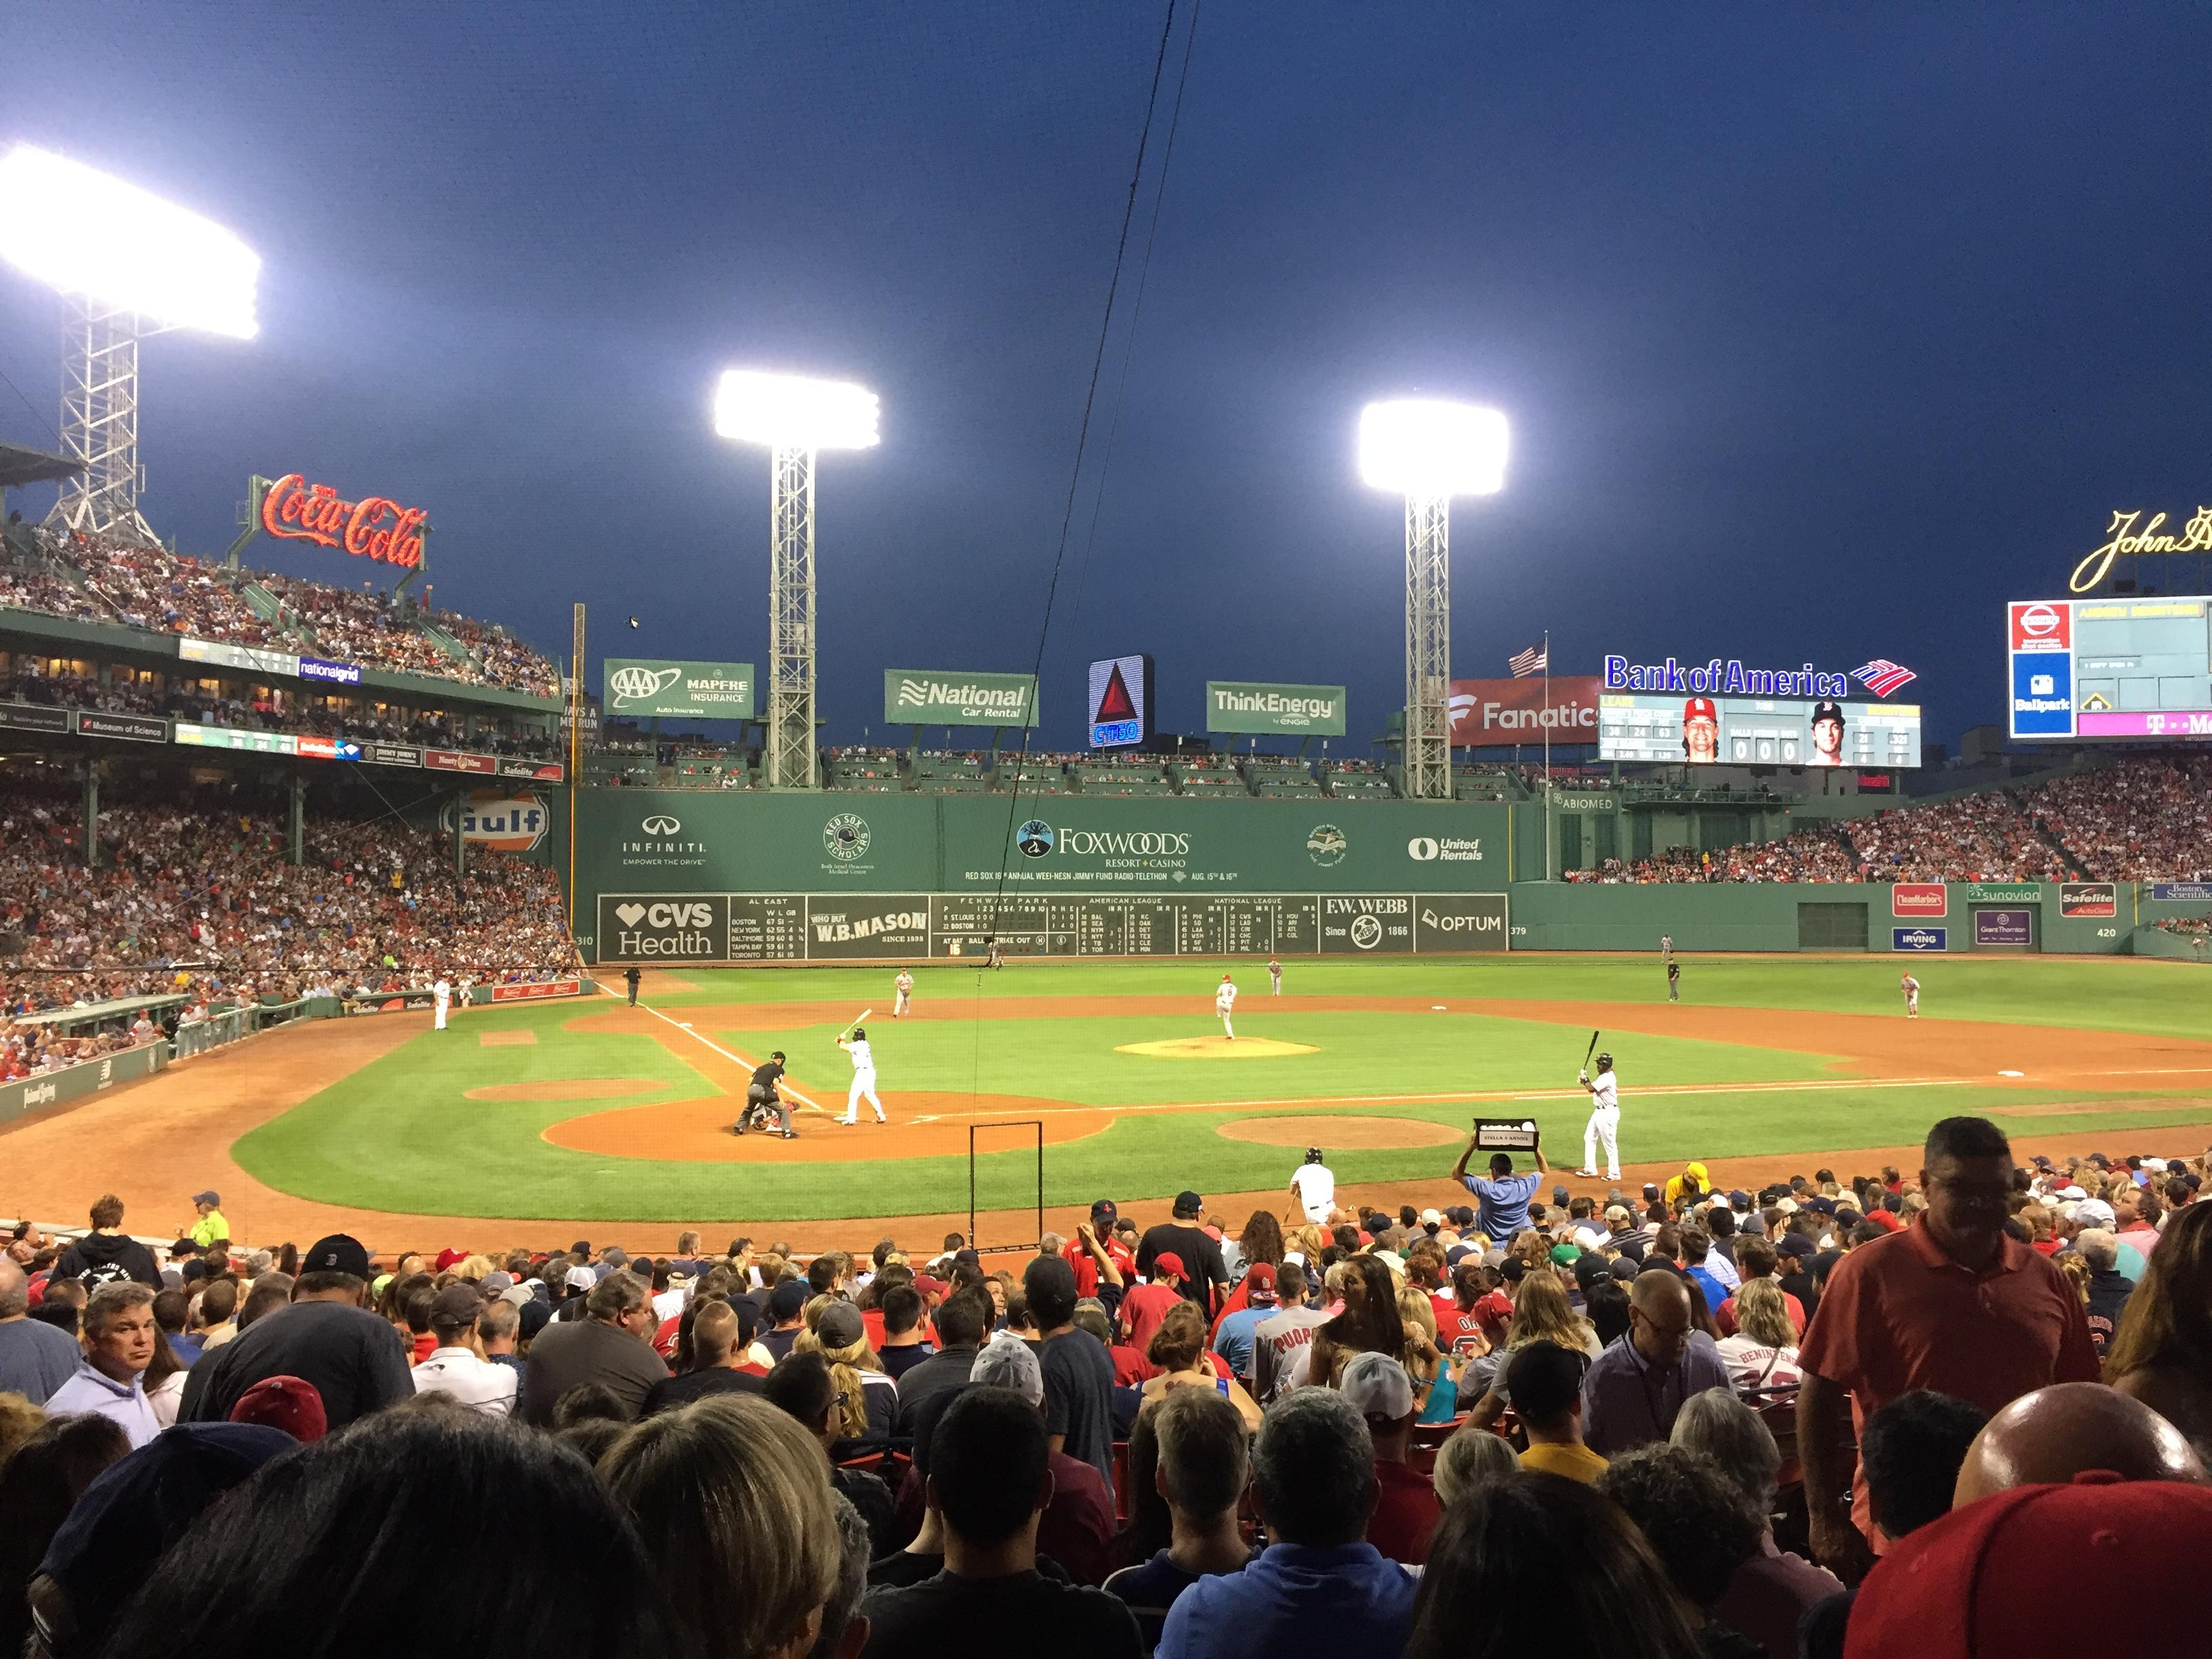 Fenway Park Section Loge Box 125 Row Gg Seat 6